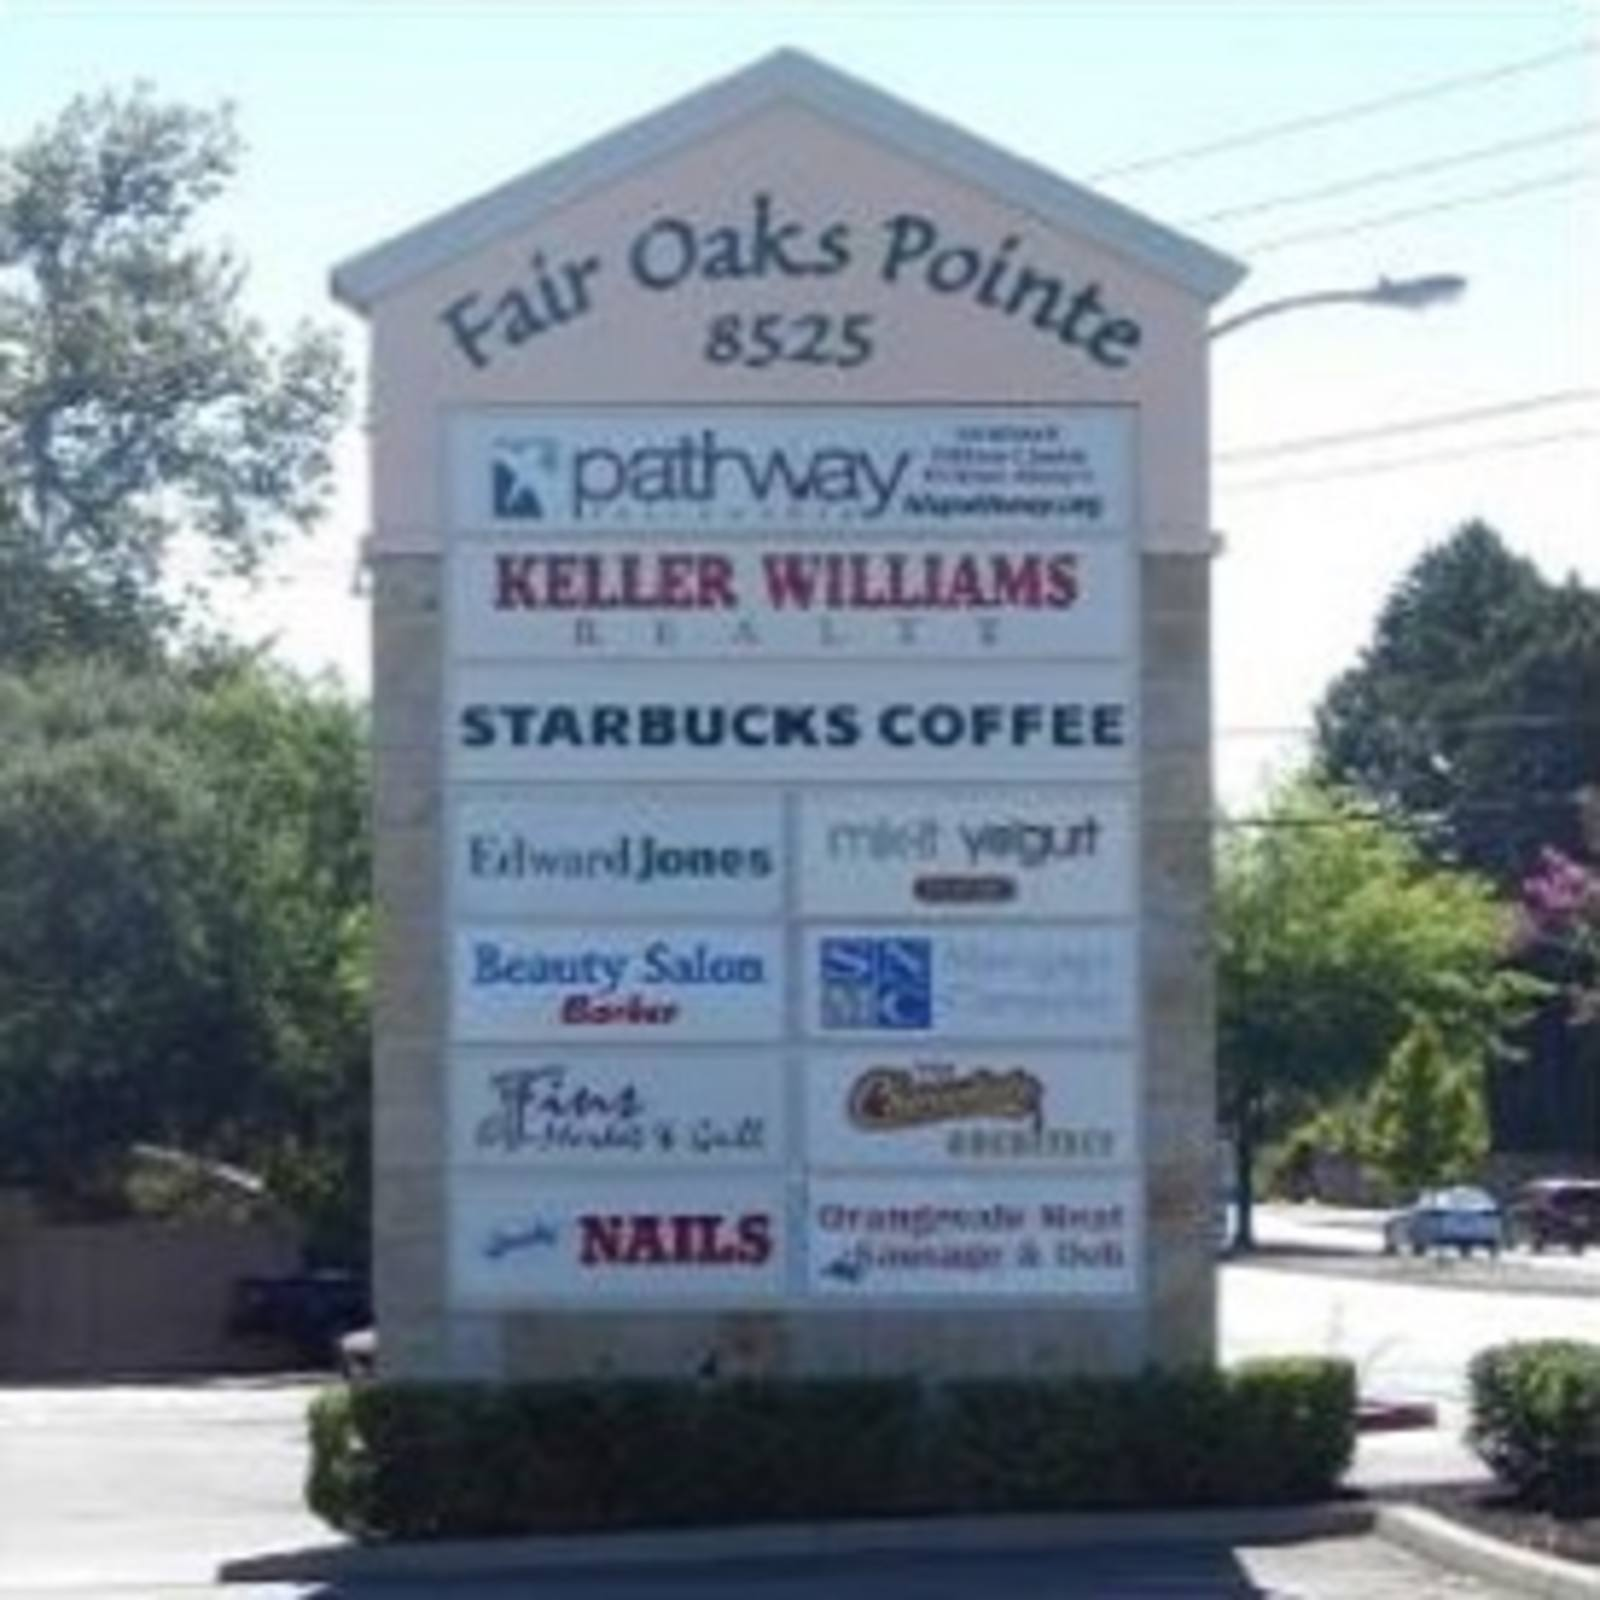 CBRE RetailFair Oaks Pointe8525 Madison Ave  Photo